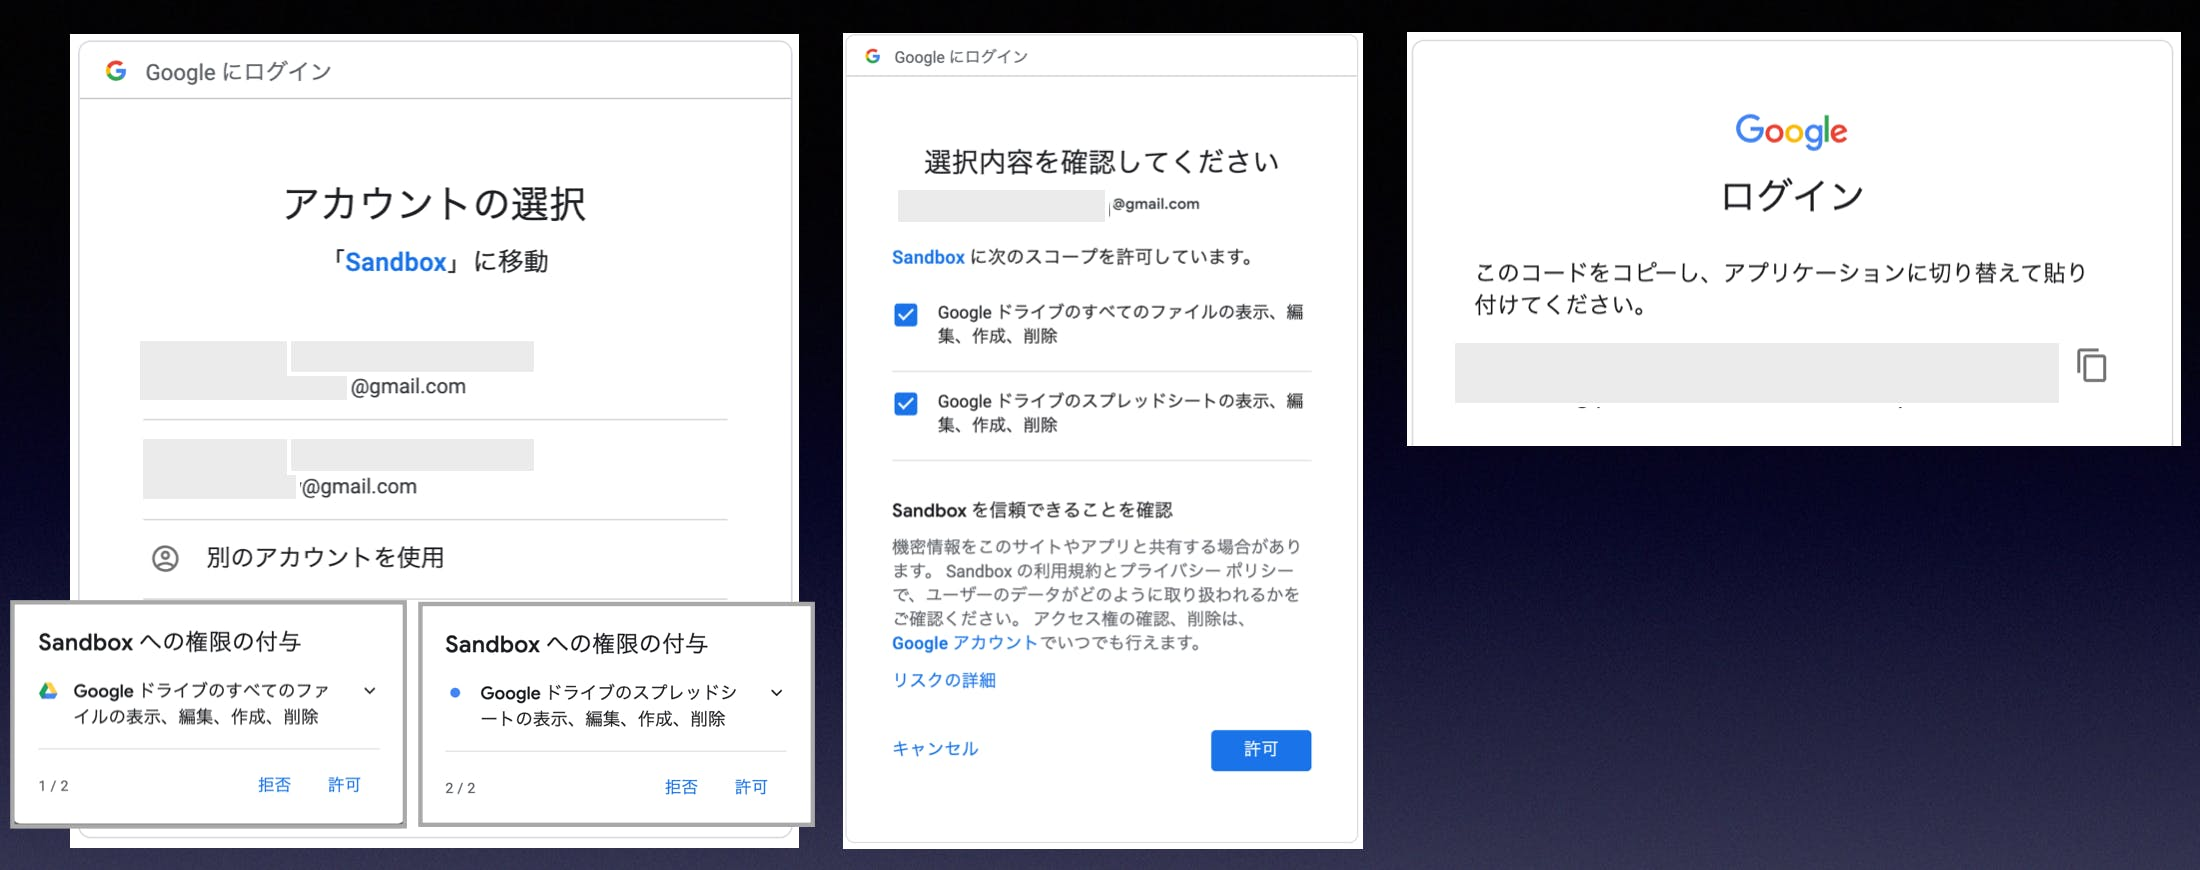 auth-google.png